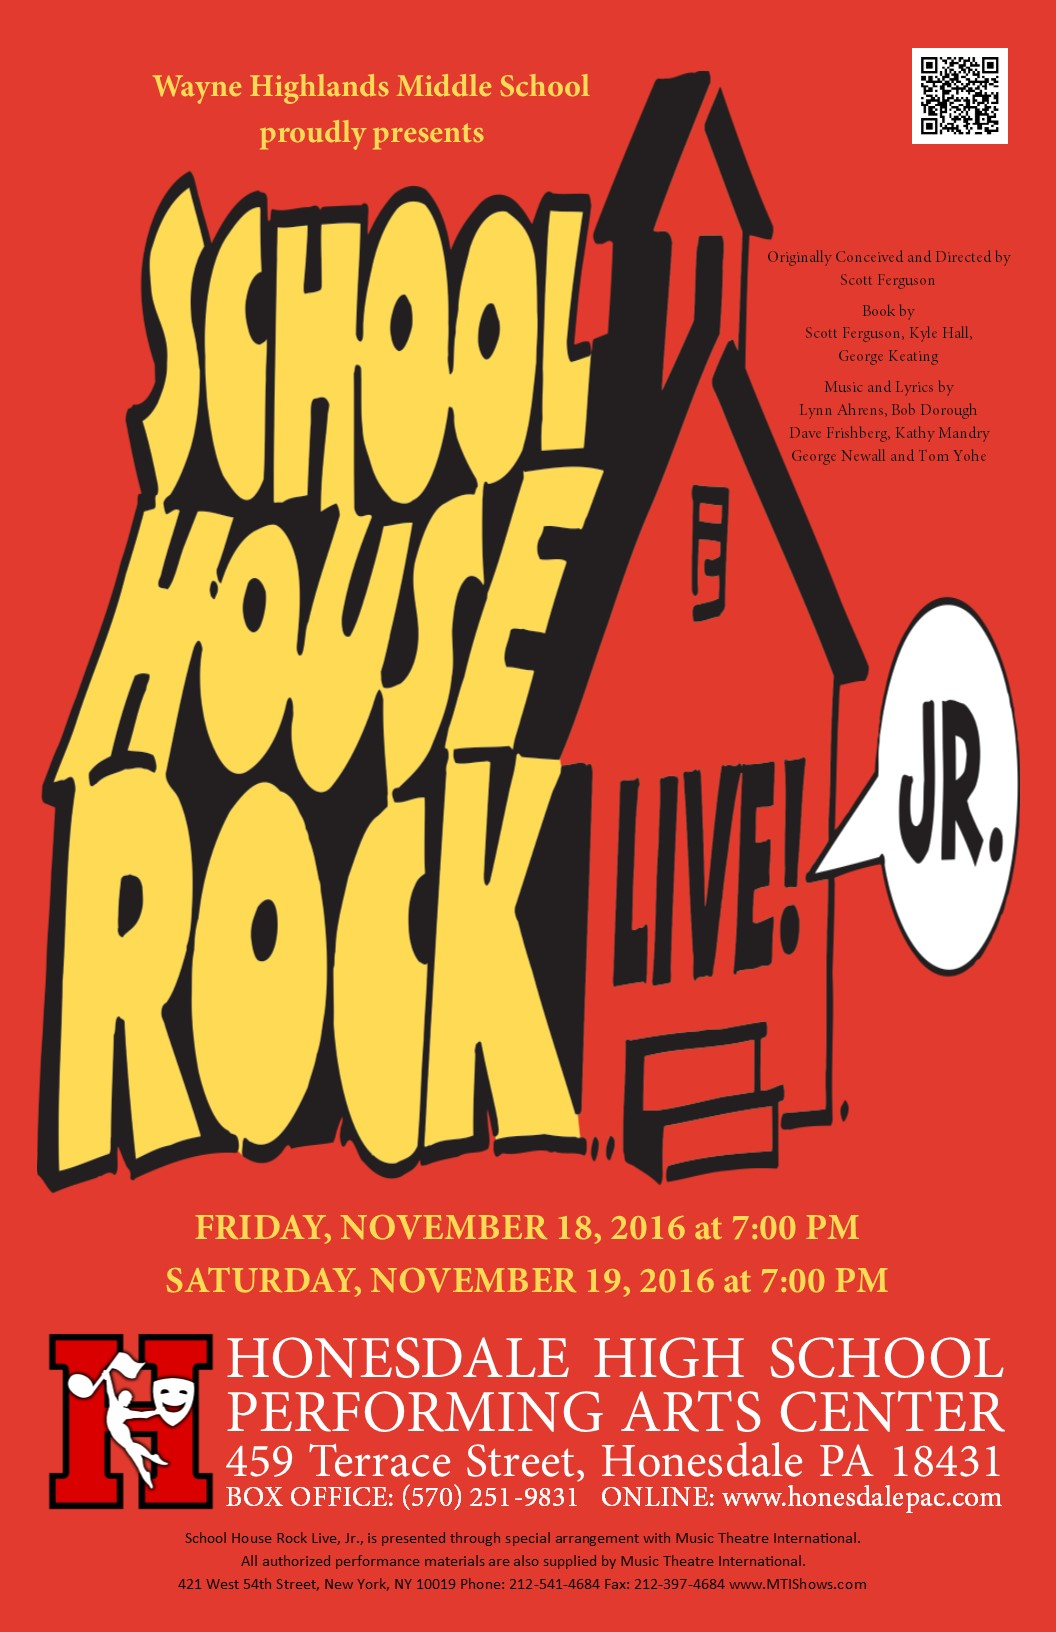 Honesdale Performing Arts Center :: School House Rock Live Jr